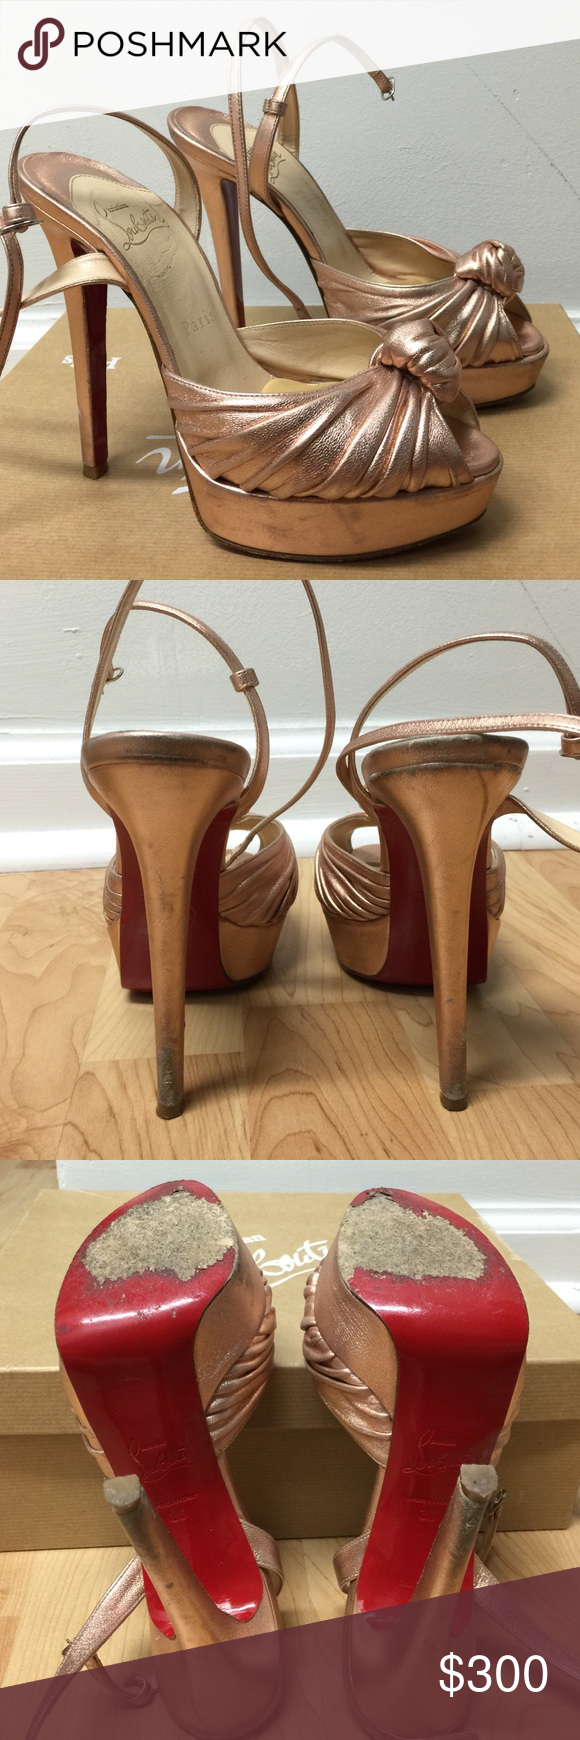 a139ca062751 Rose gold Christian Louboutins. 100% original- bought at Saks Fifth Avenue.  Show